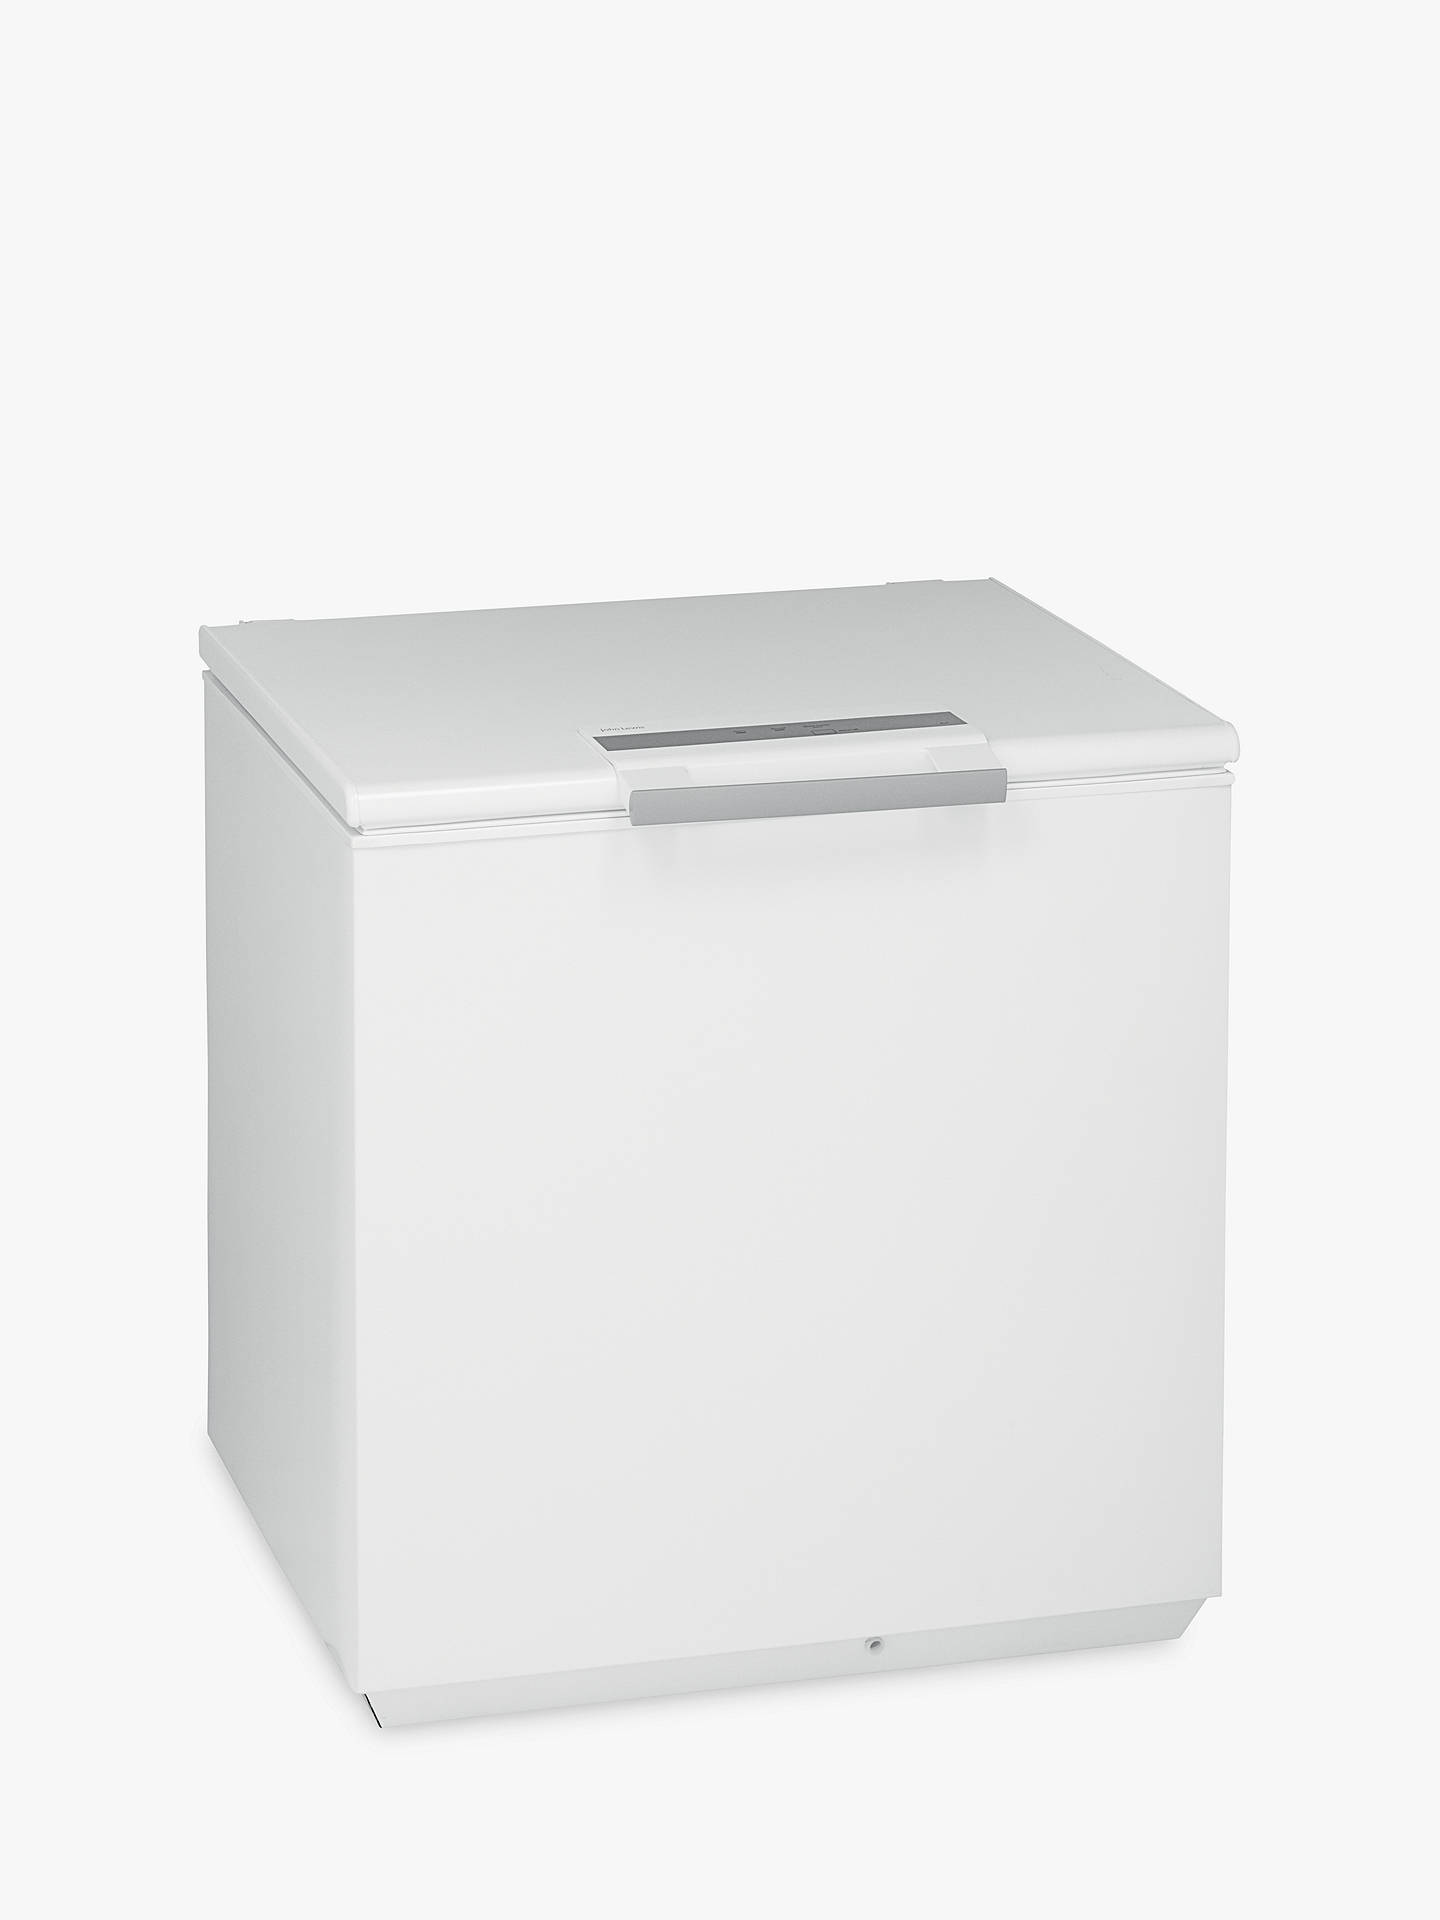 Buy John Lewis & Partners JLCH200 Chest Freezer, A+ Energy Rating, 80cm Wide, White Online at johnlewis.com